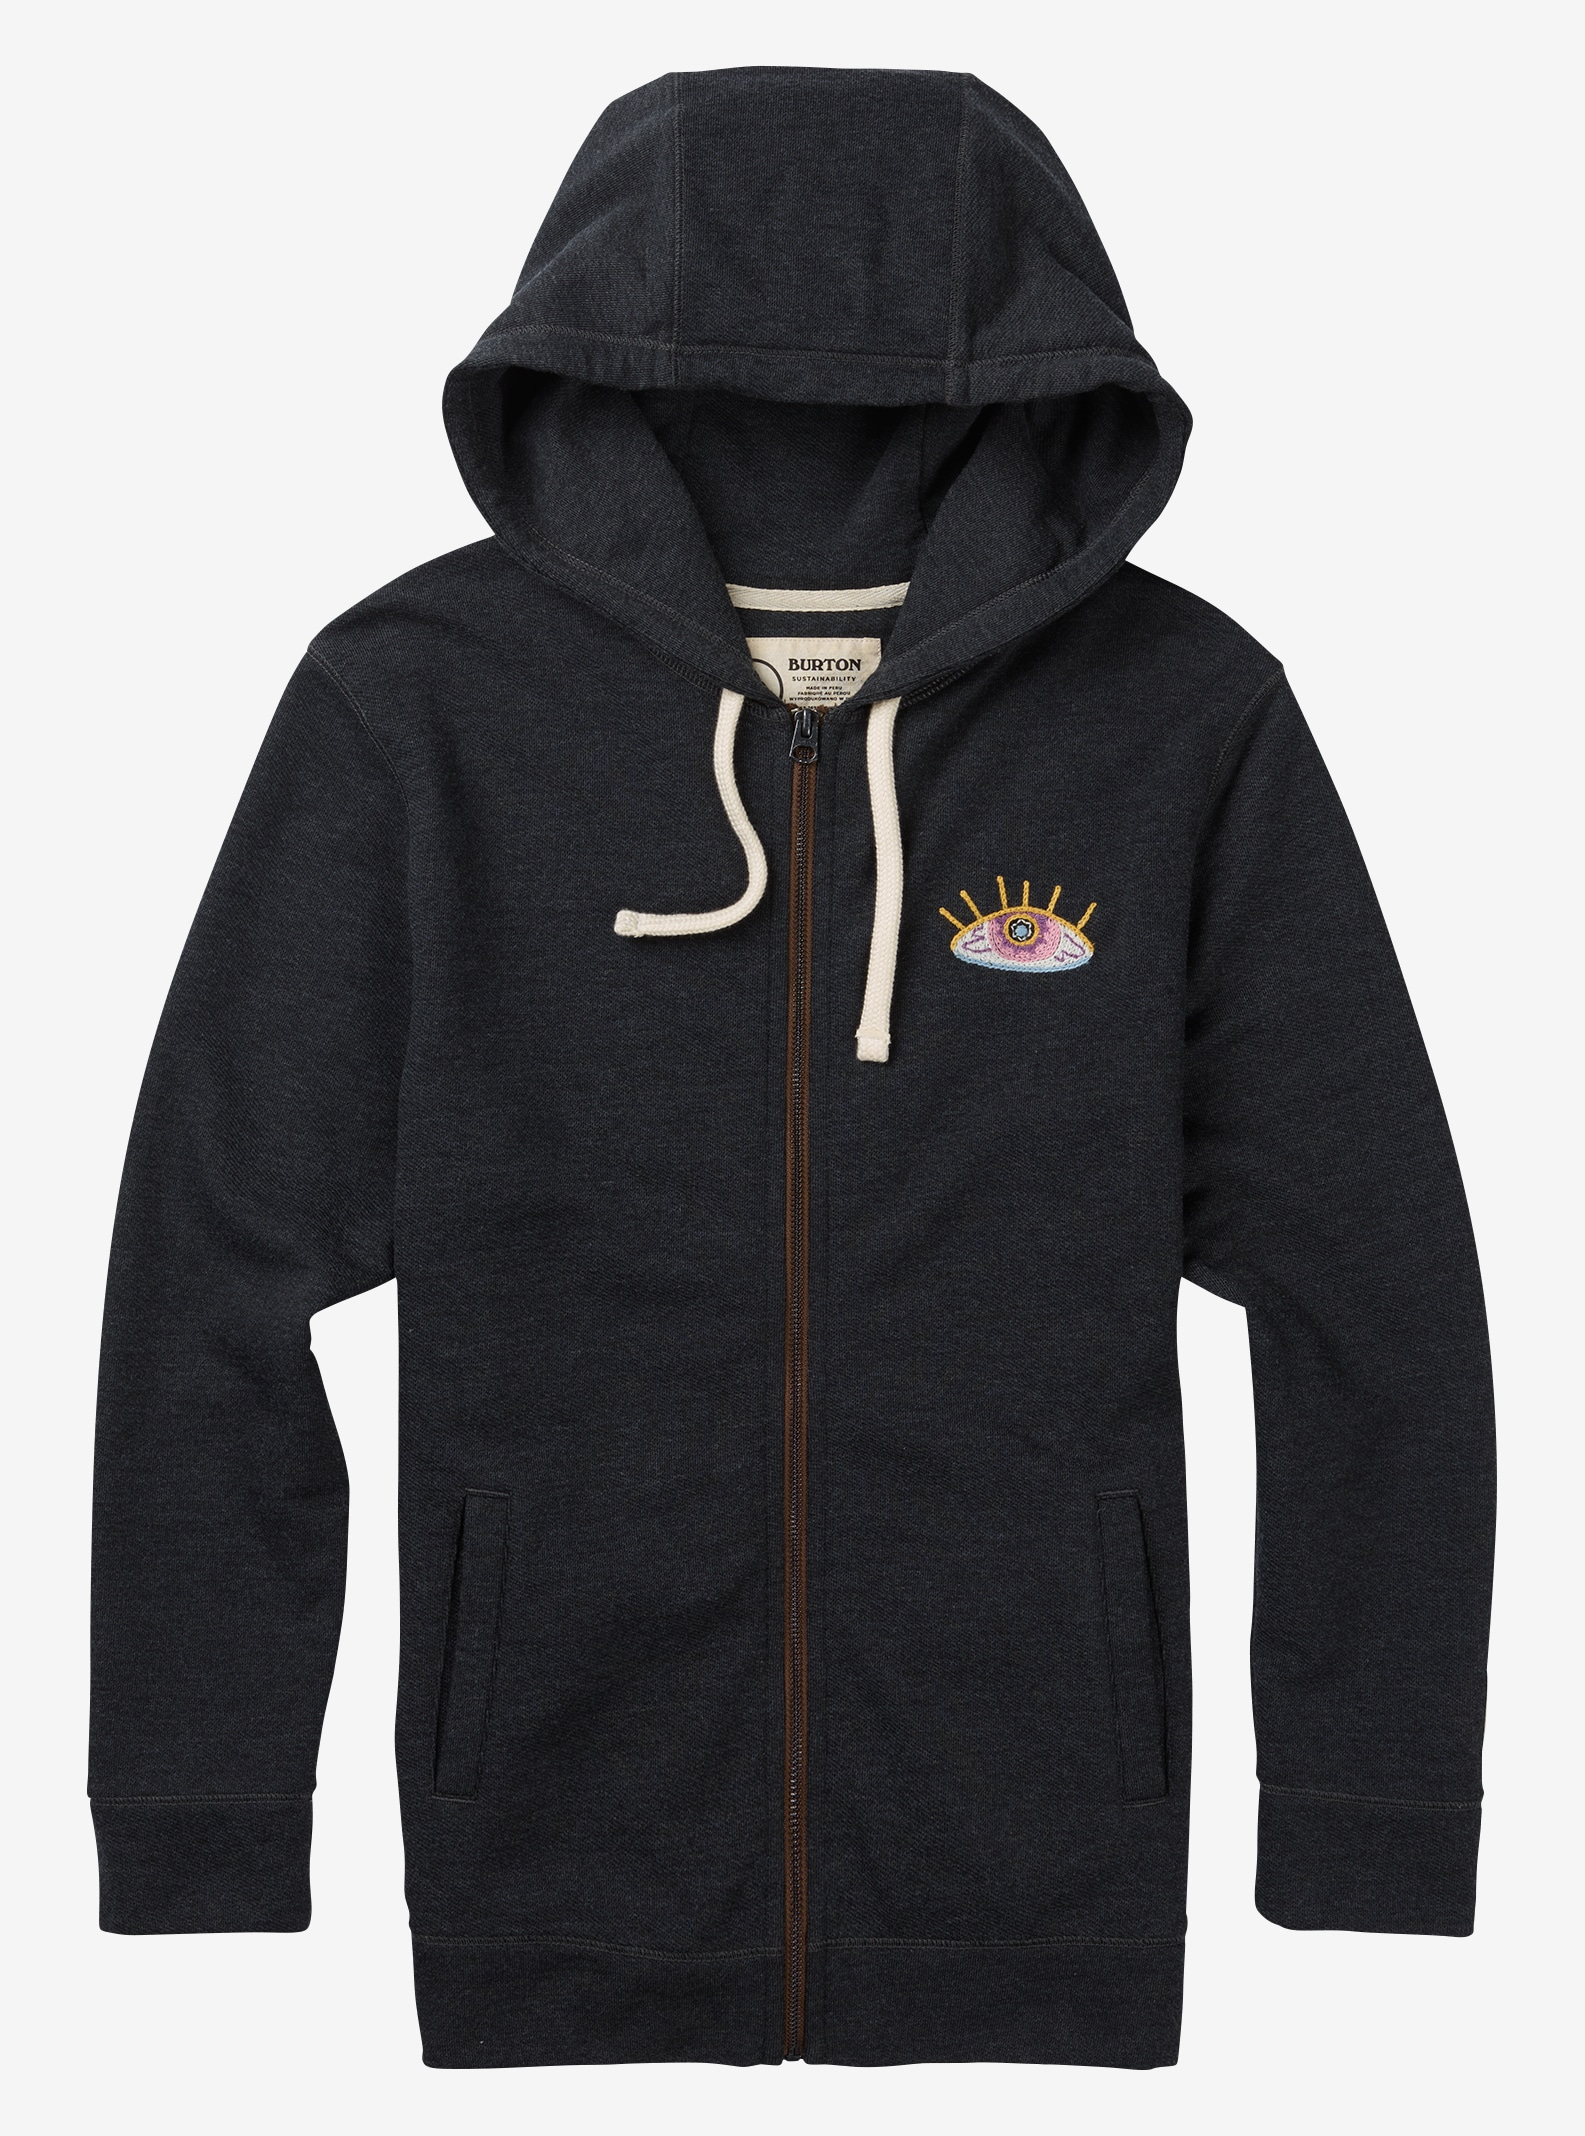 Women's Burton Neverwhere Full-Zip Hoodie shown in True Black